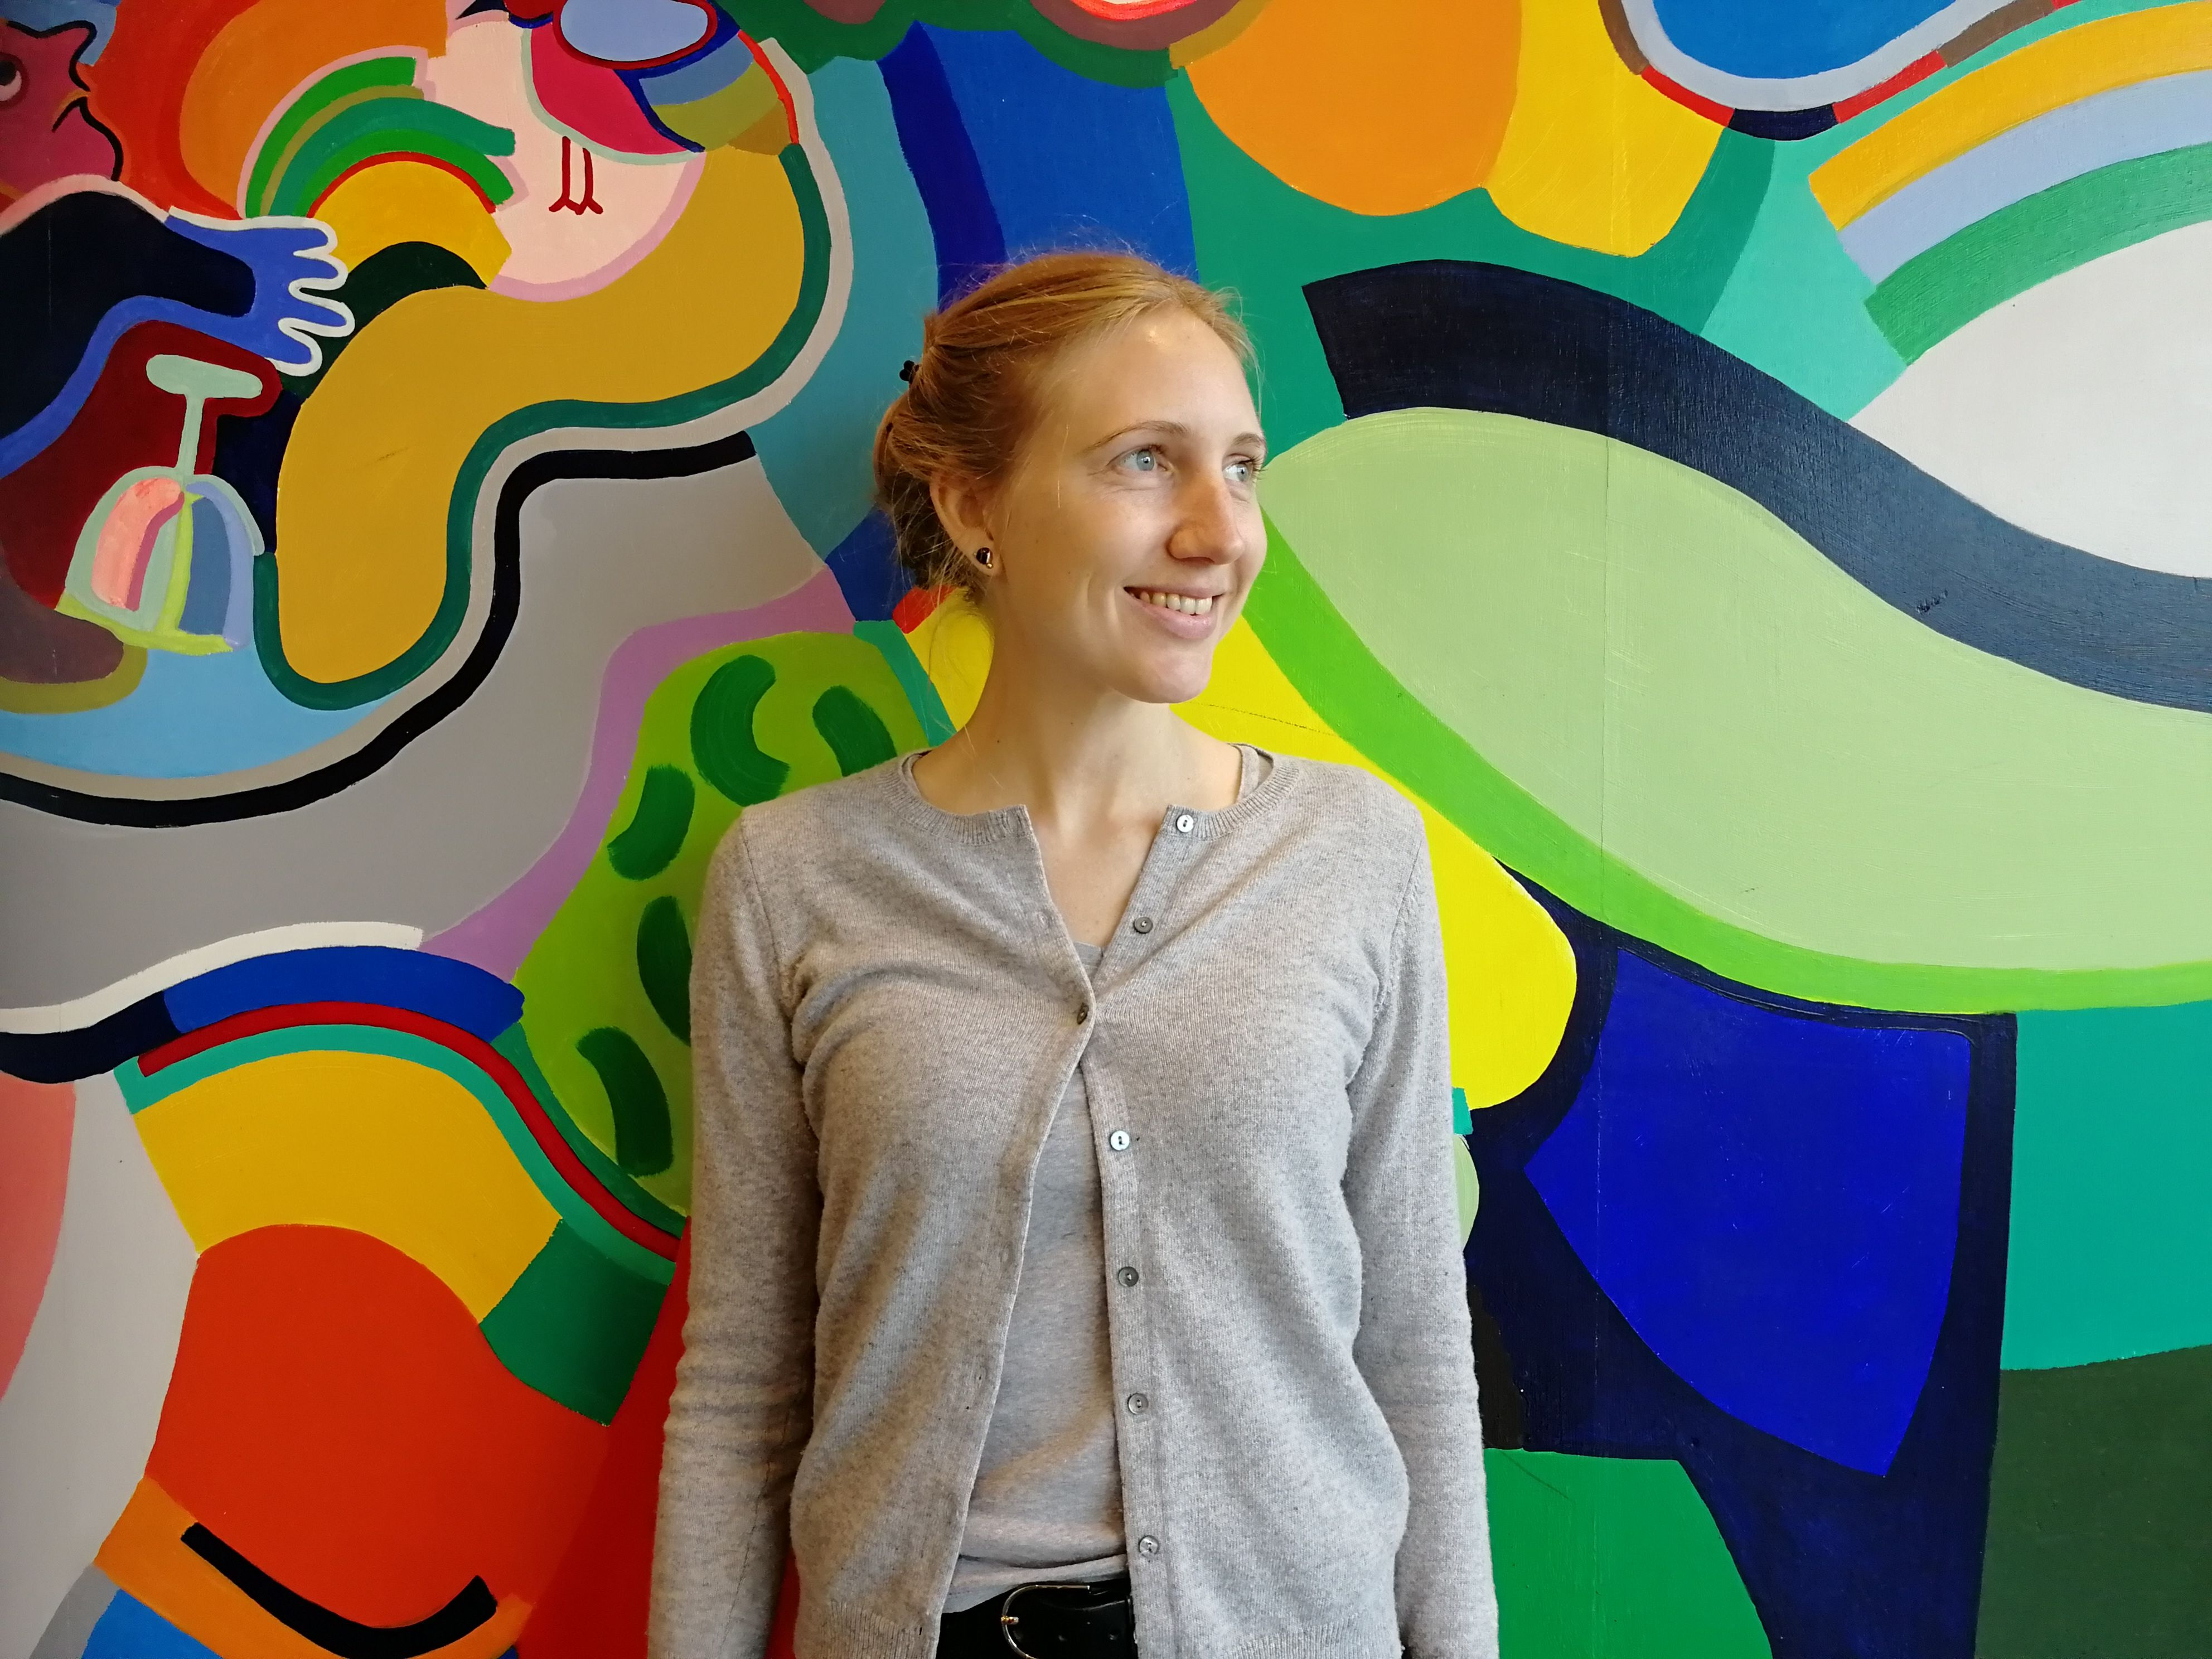 Hanna Fromell is a postdoctoral researcher at the Faculty of Economics and Business of the University of Groningen